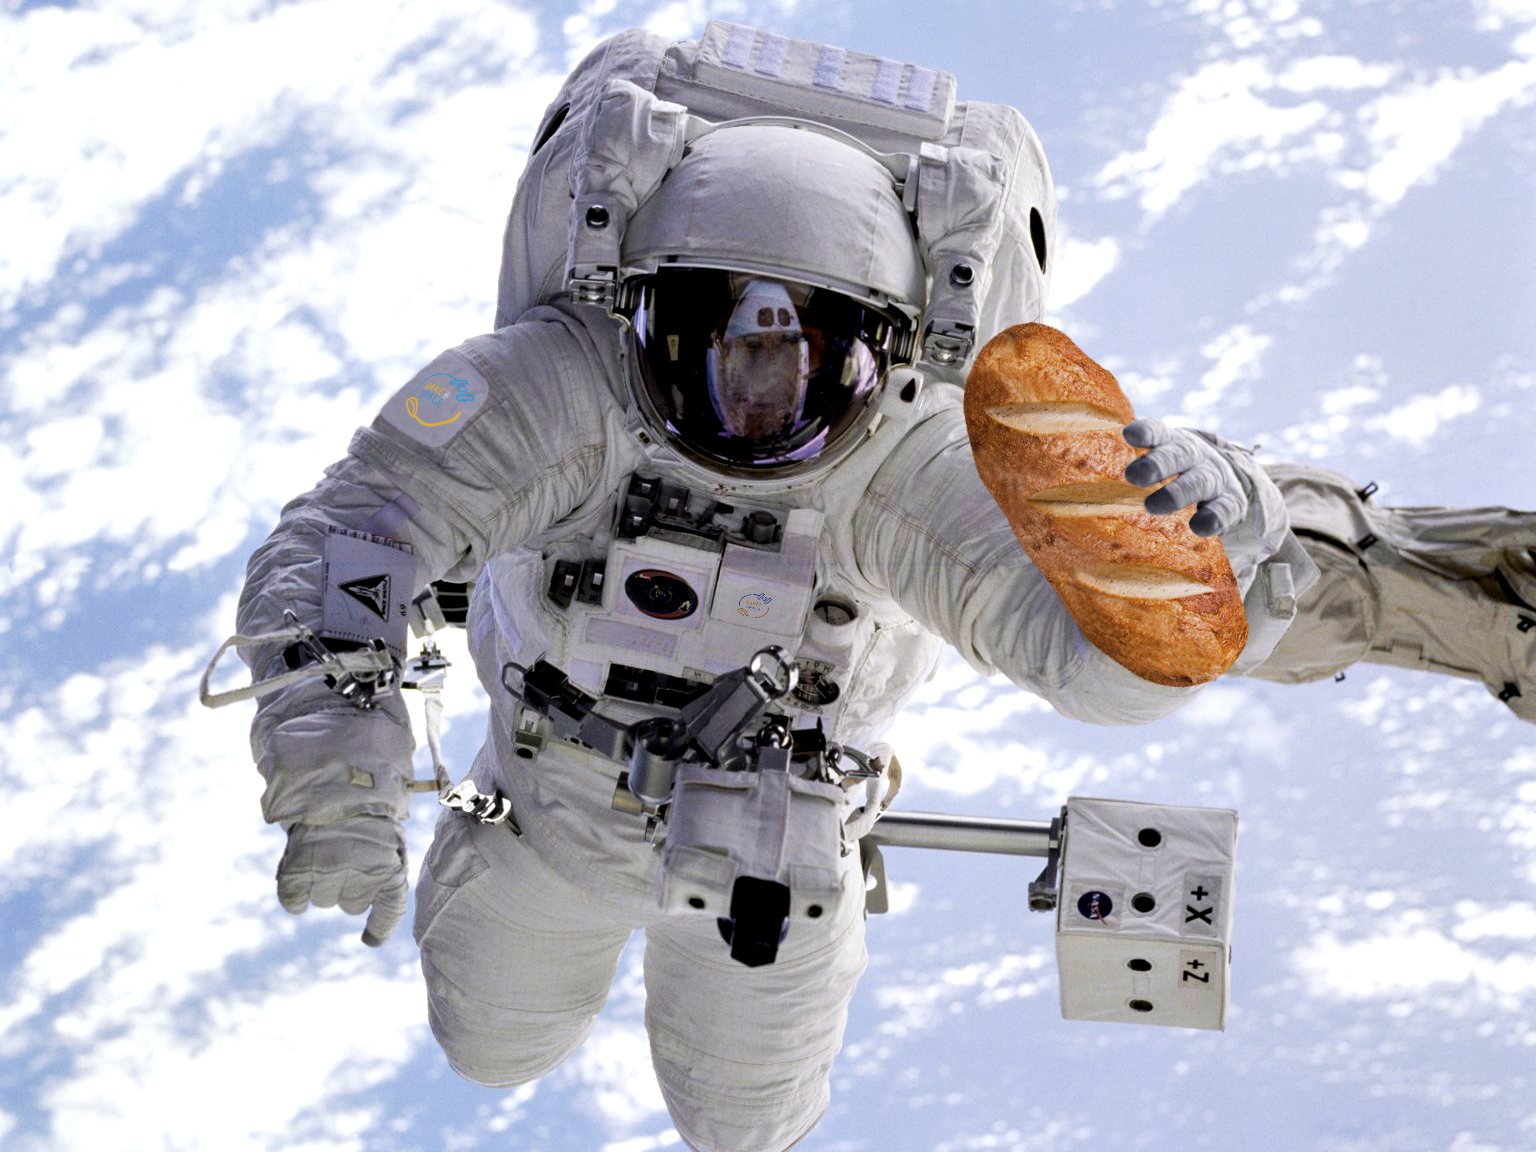 3, 2, 1 ... Bake Off! The Mission To Make Bread In Space